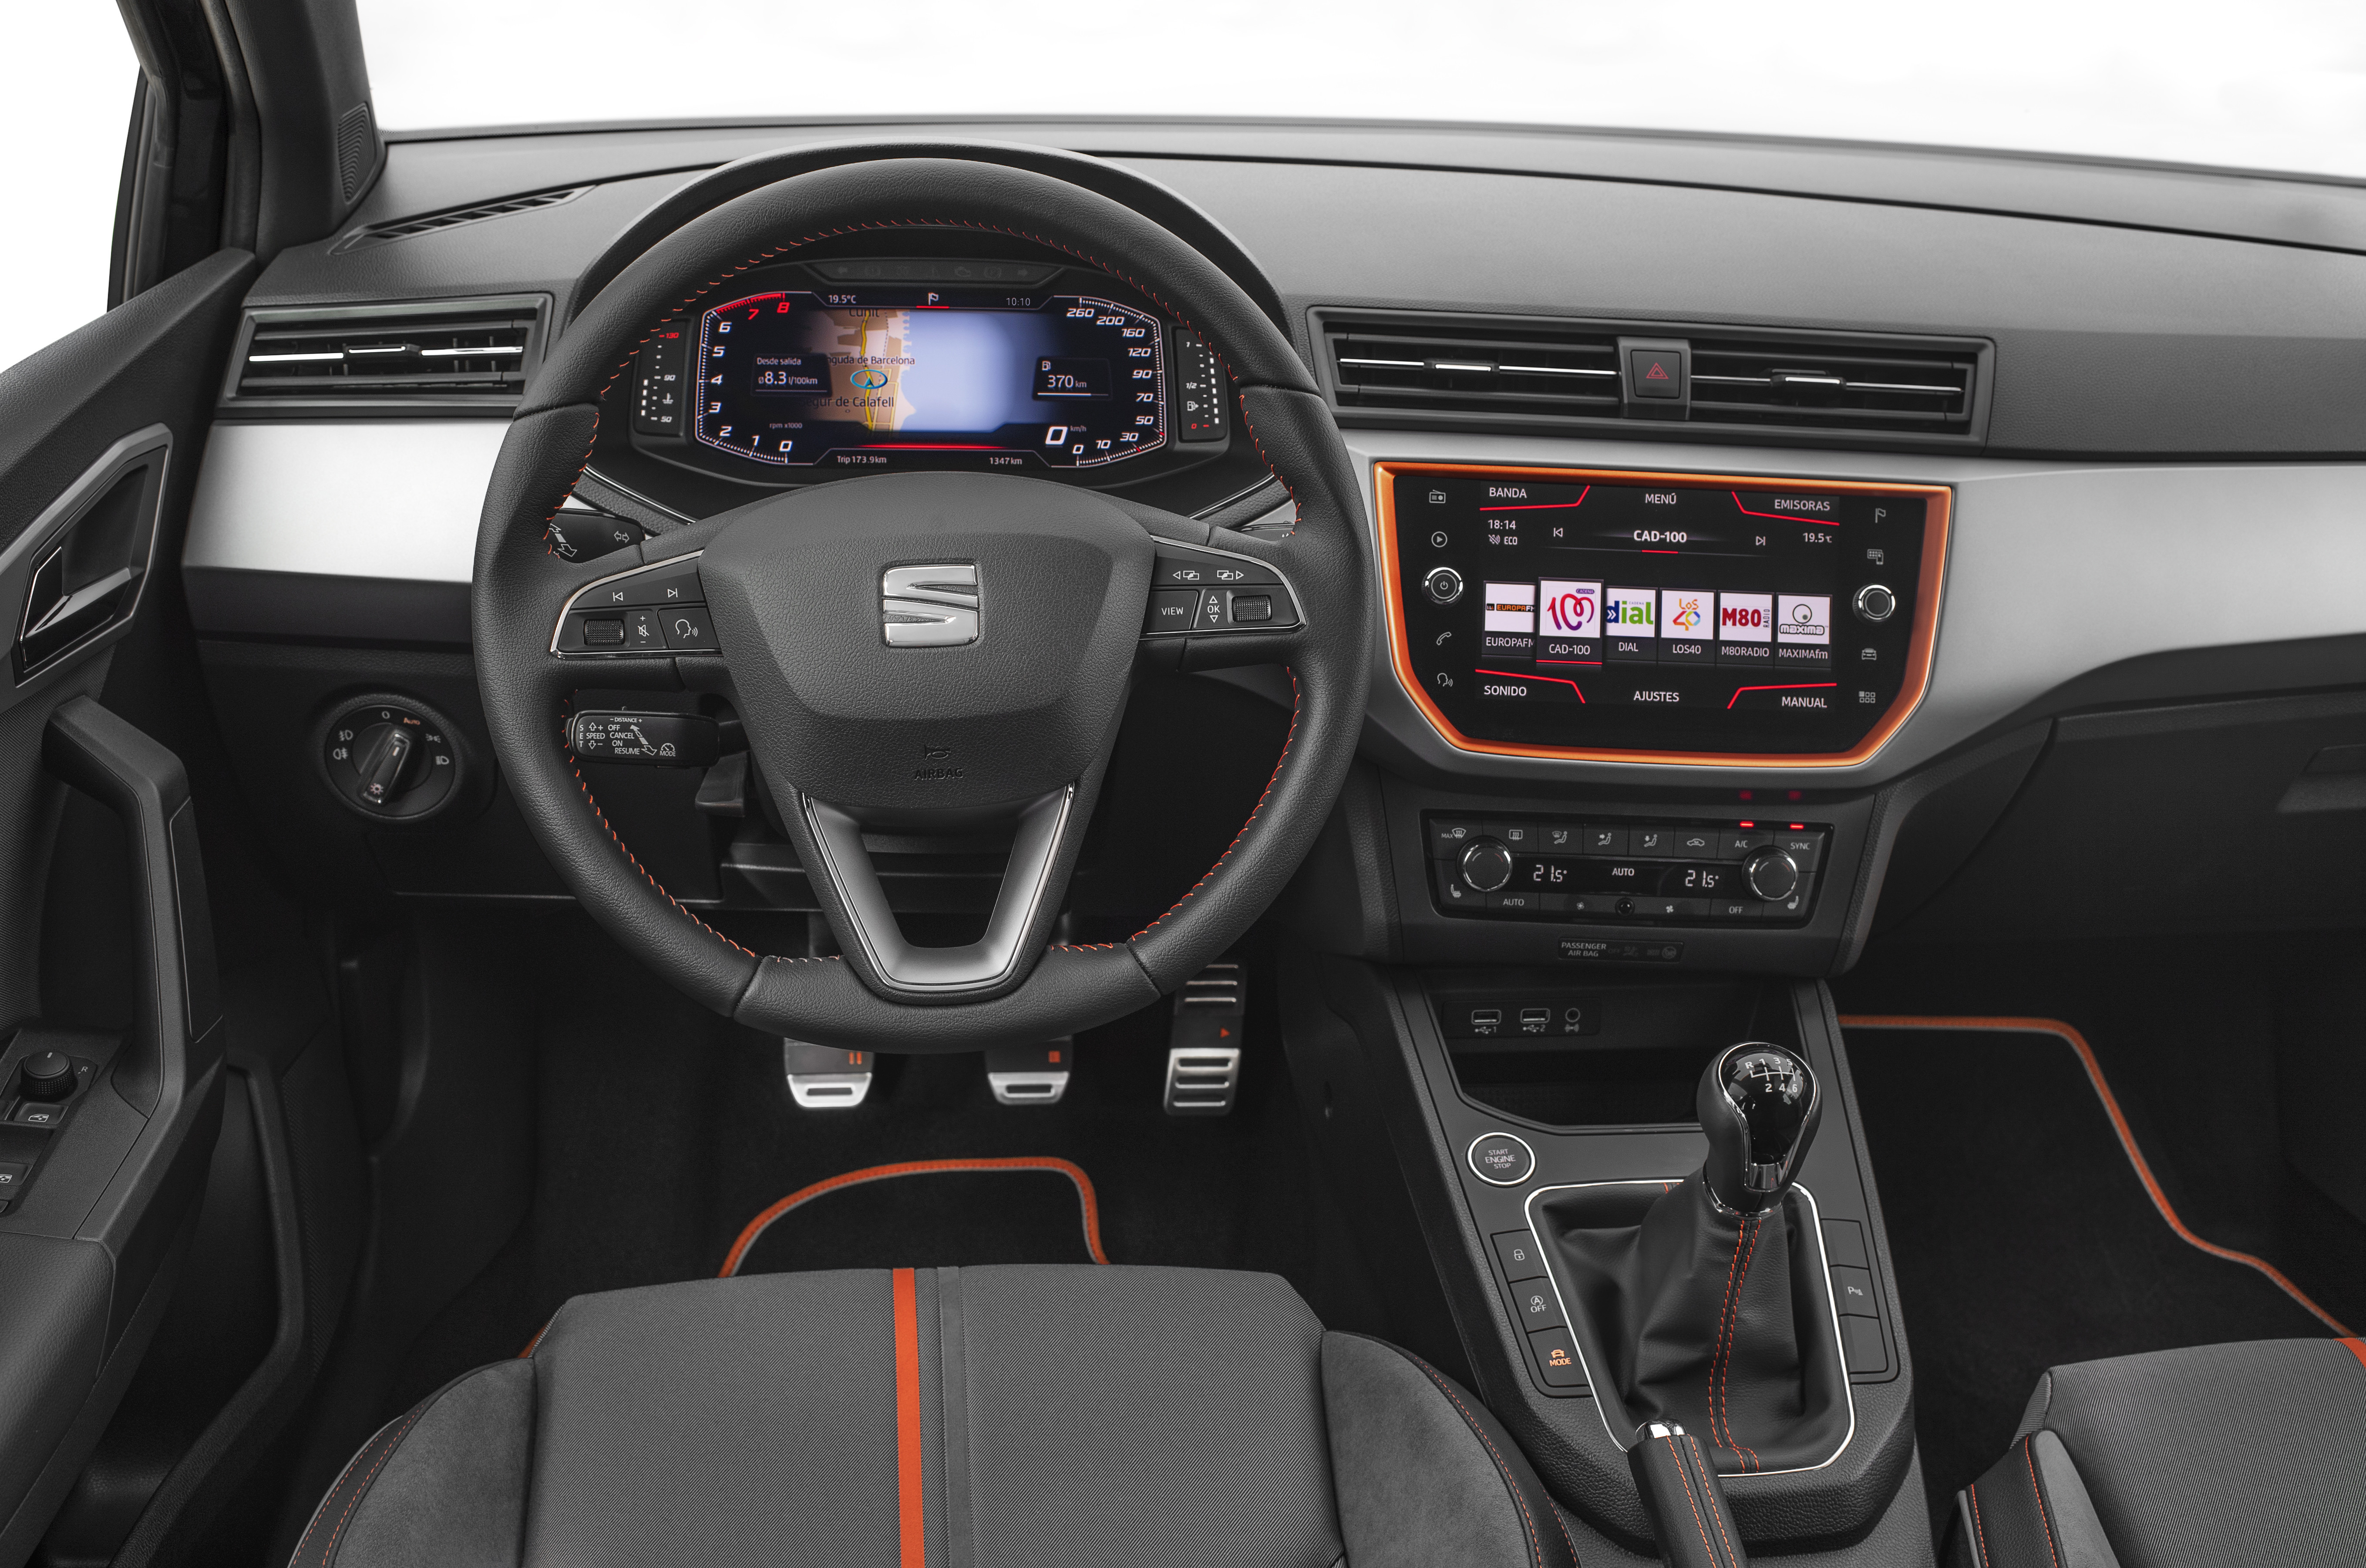 SEAT Ibiza interior including dashboard and digital cockpit